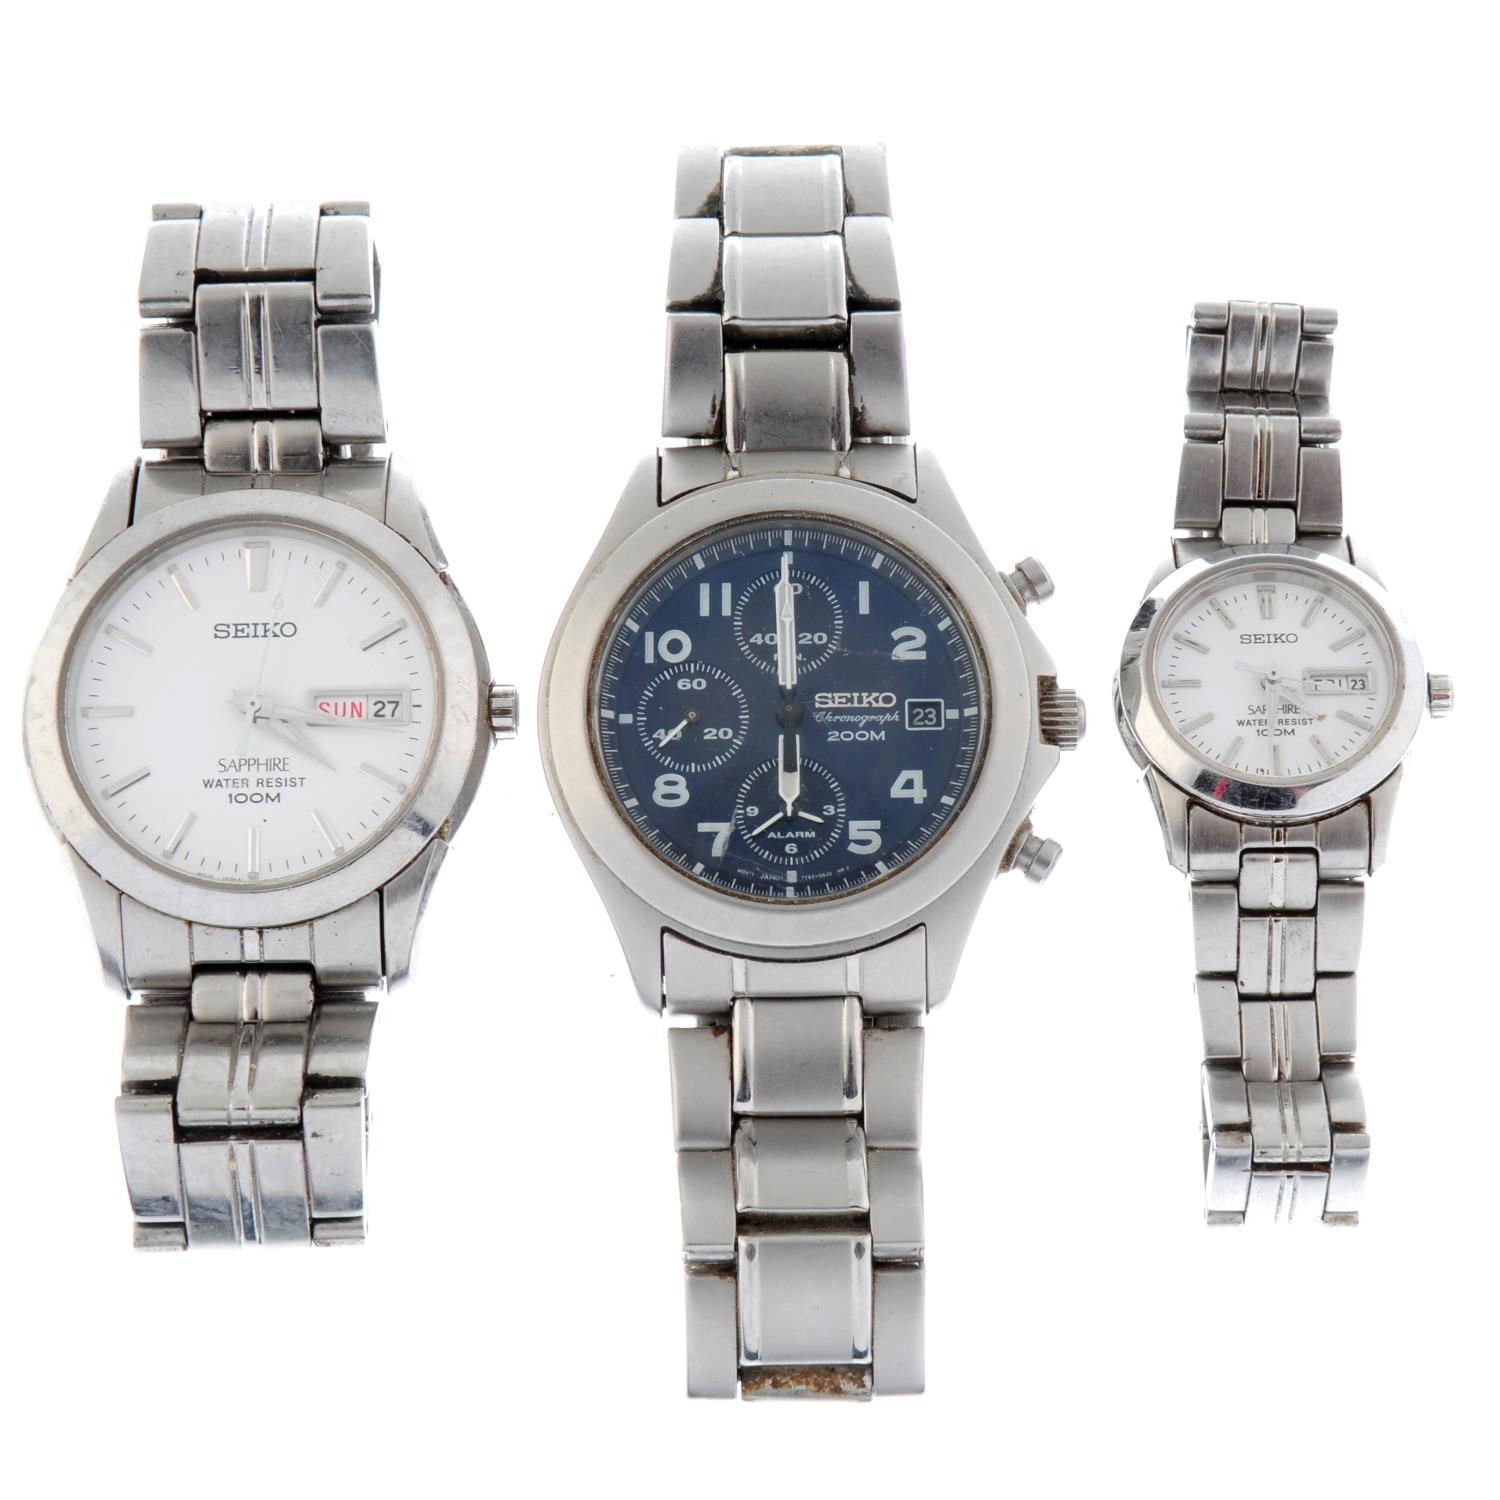 A group of ten assorted Sekio watches.